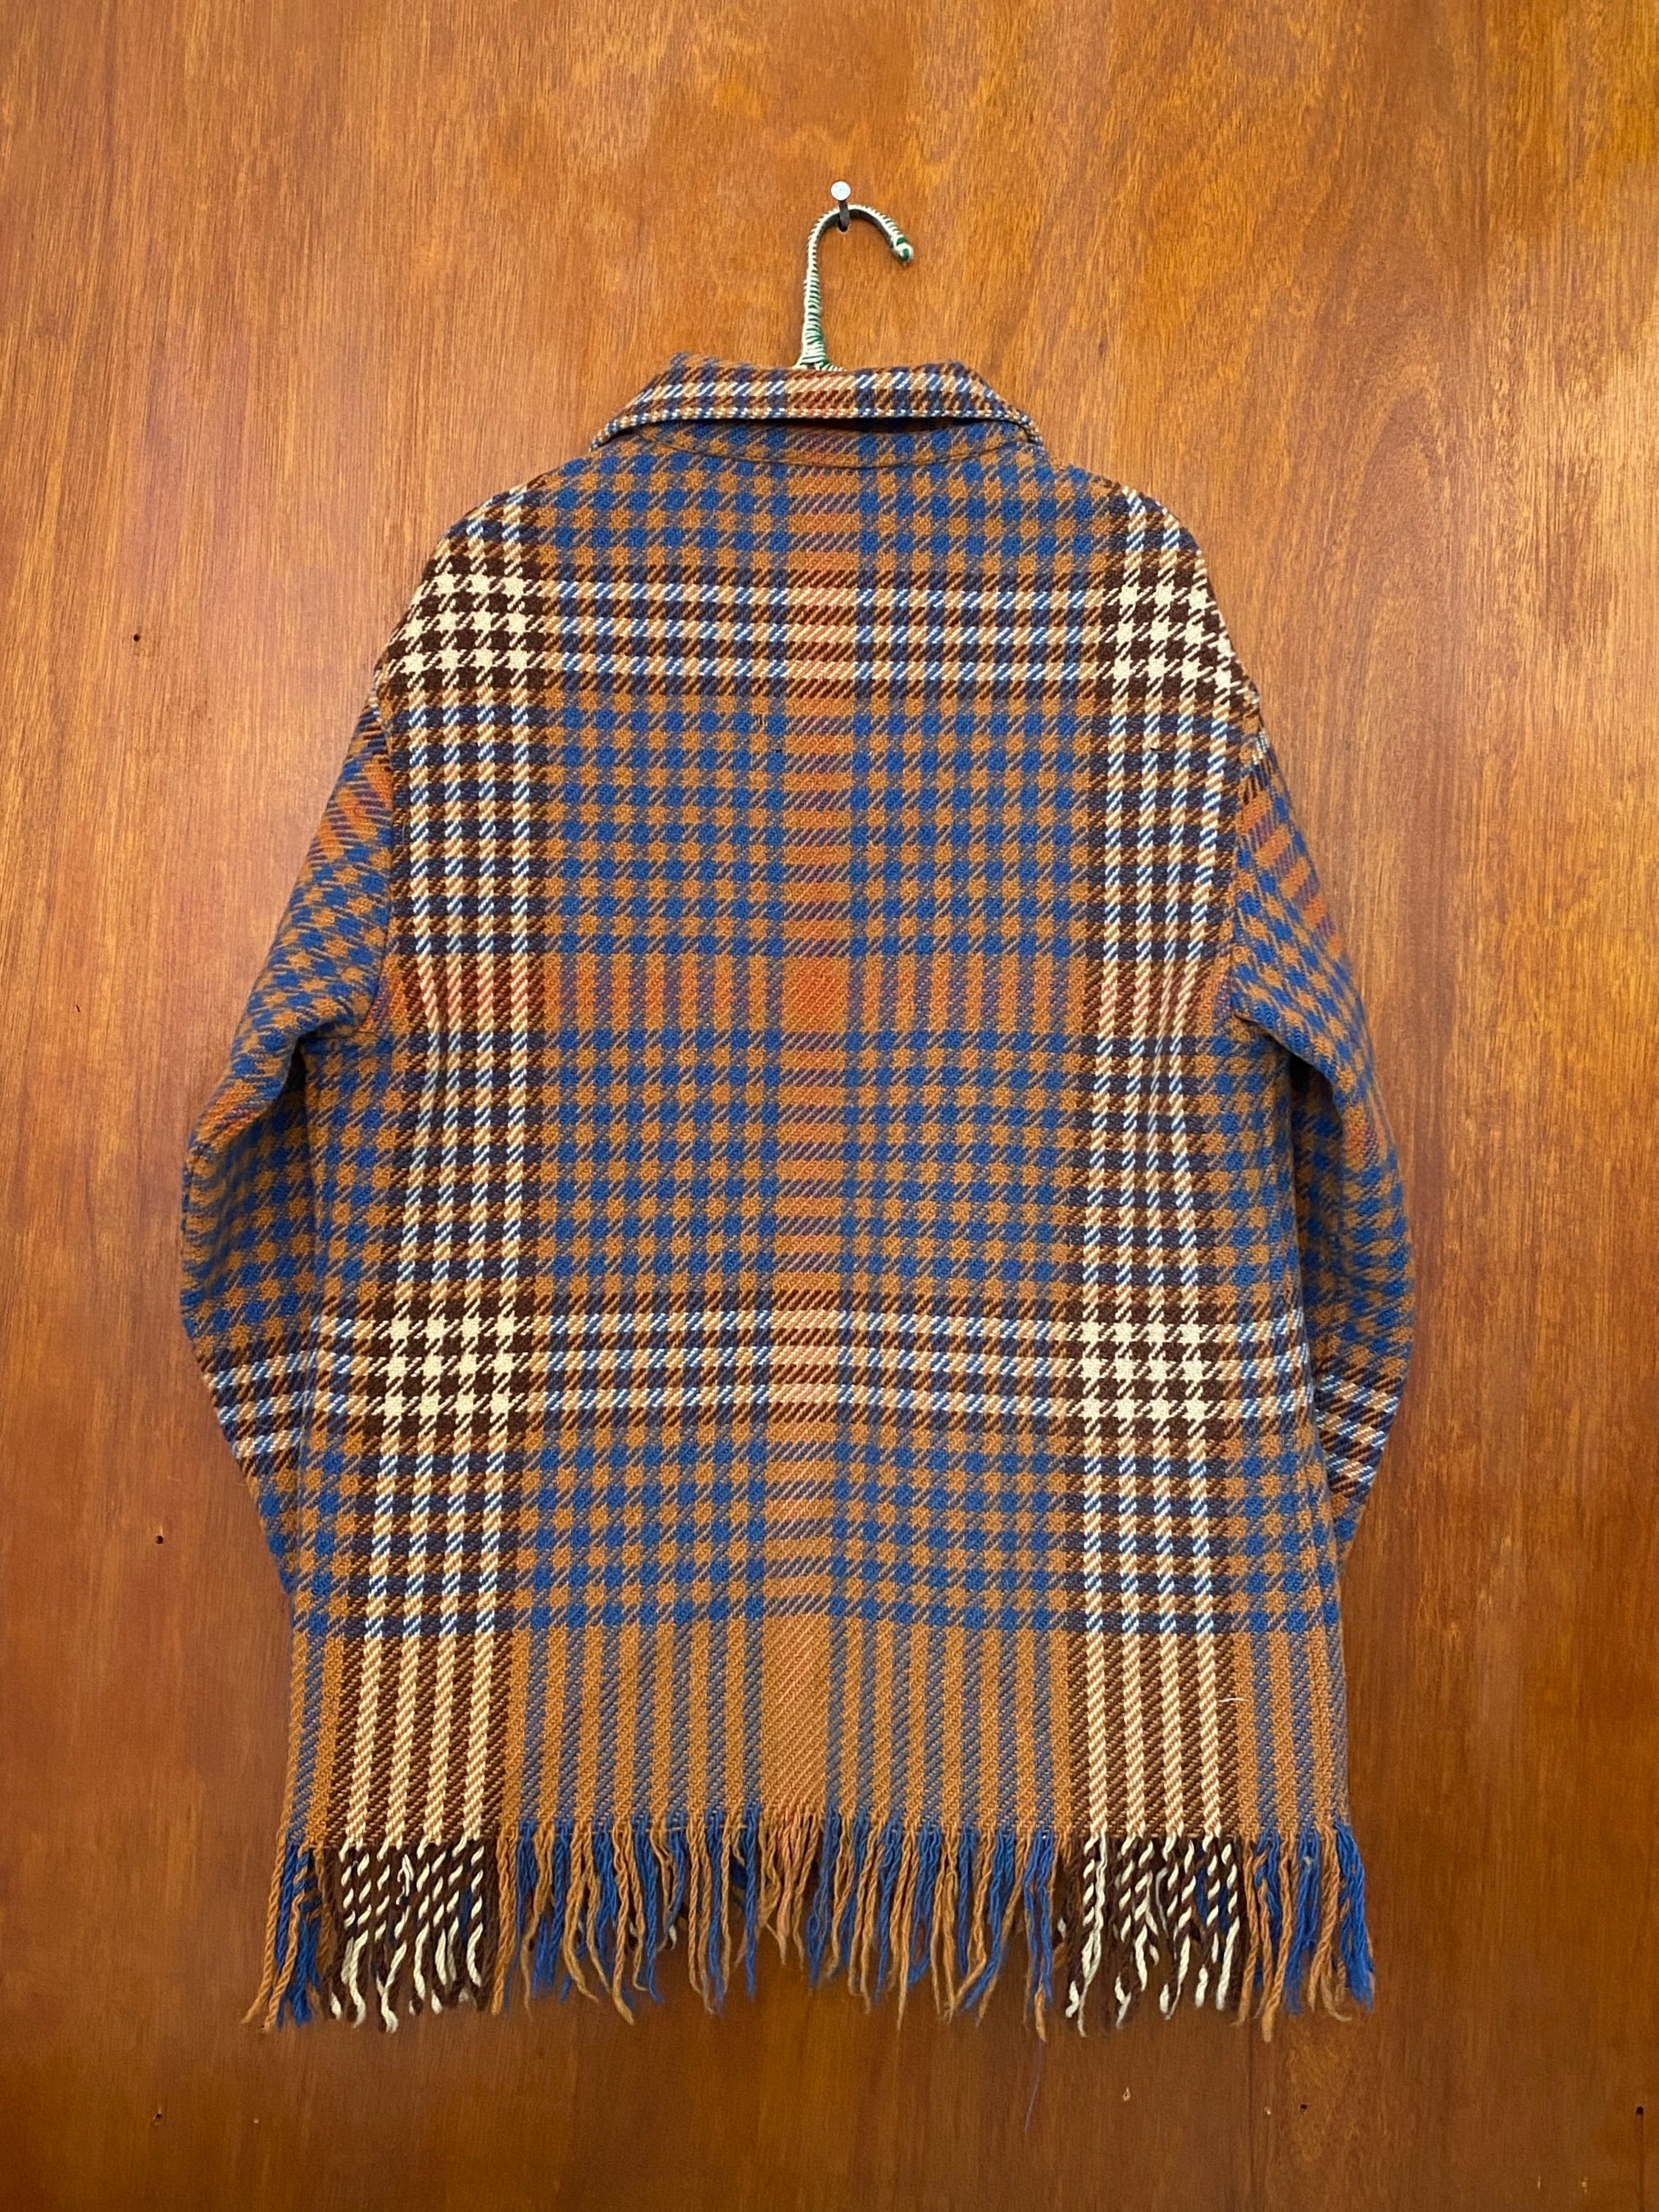 London Tan Houndstooth Jacket - M/L